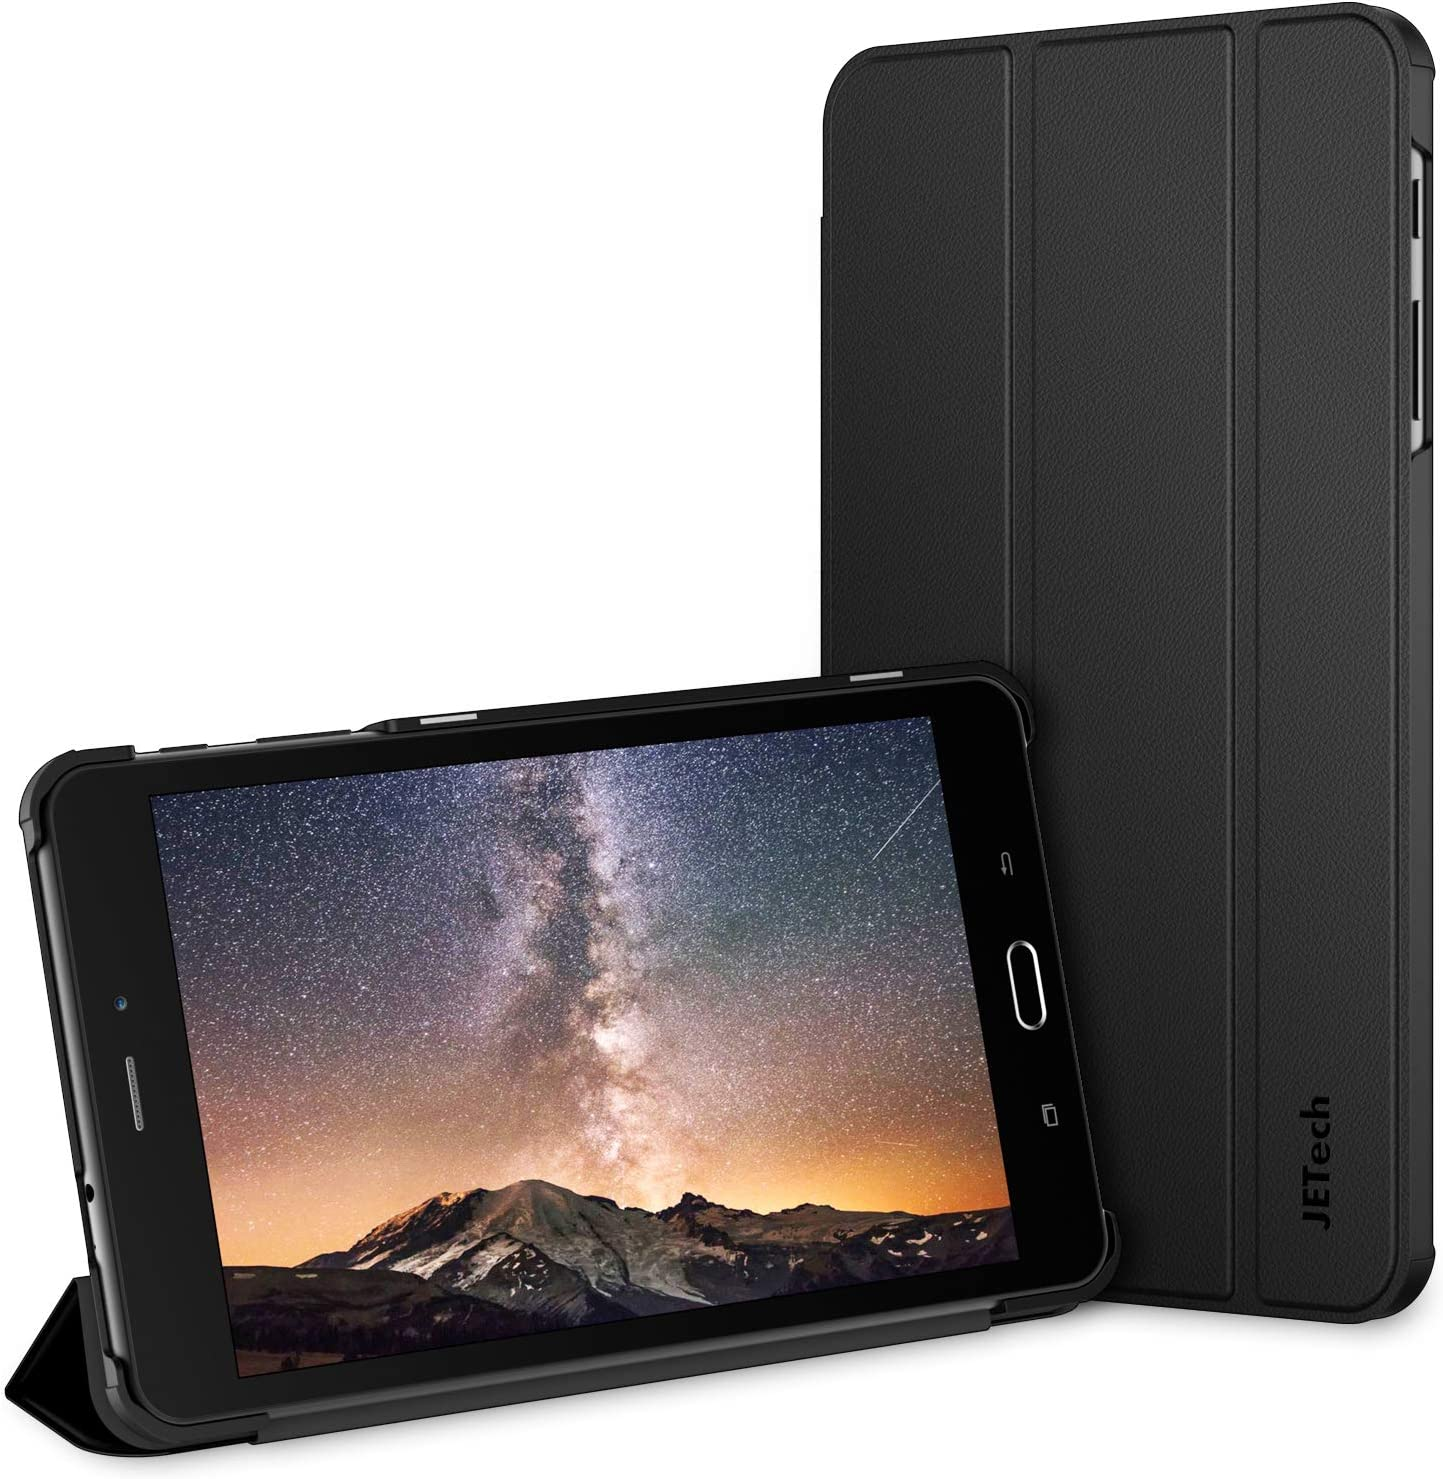 JETech Case for Samsung Tab A 8.0 Tablet 2017 Release T380/T385, (NOT for 2015 Model), Smart Cover with Auto Sleep/Wake (Black)